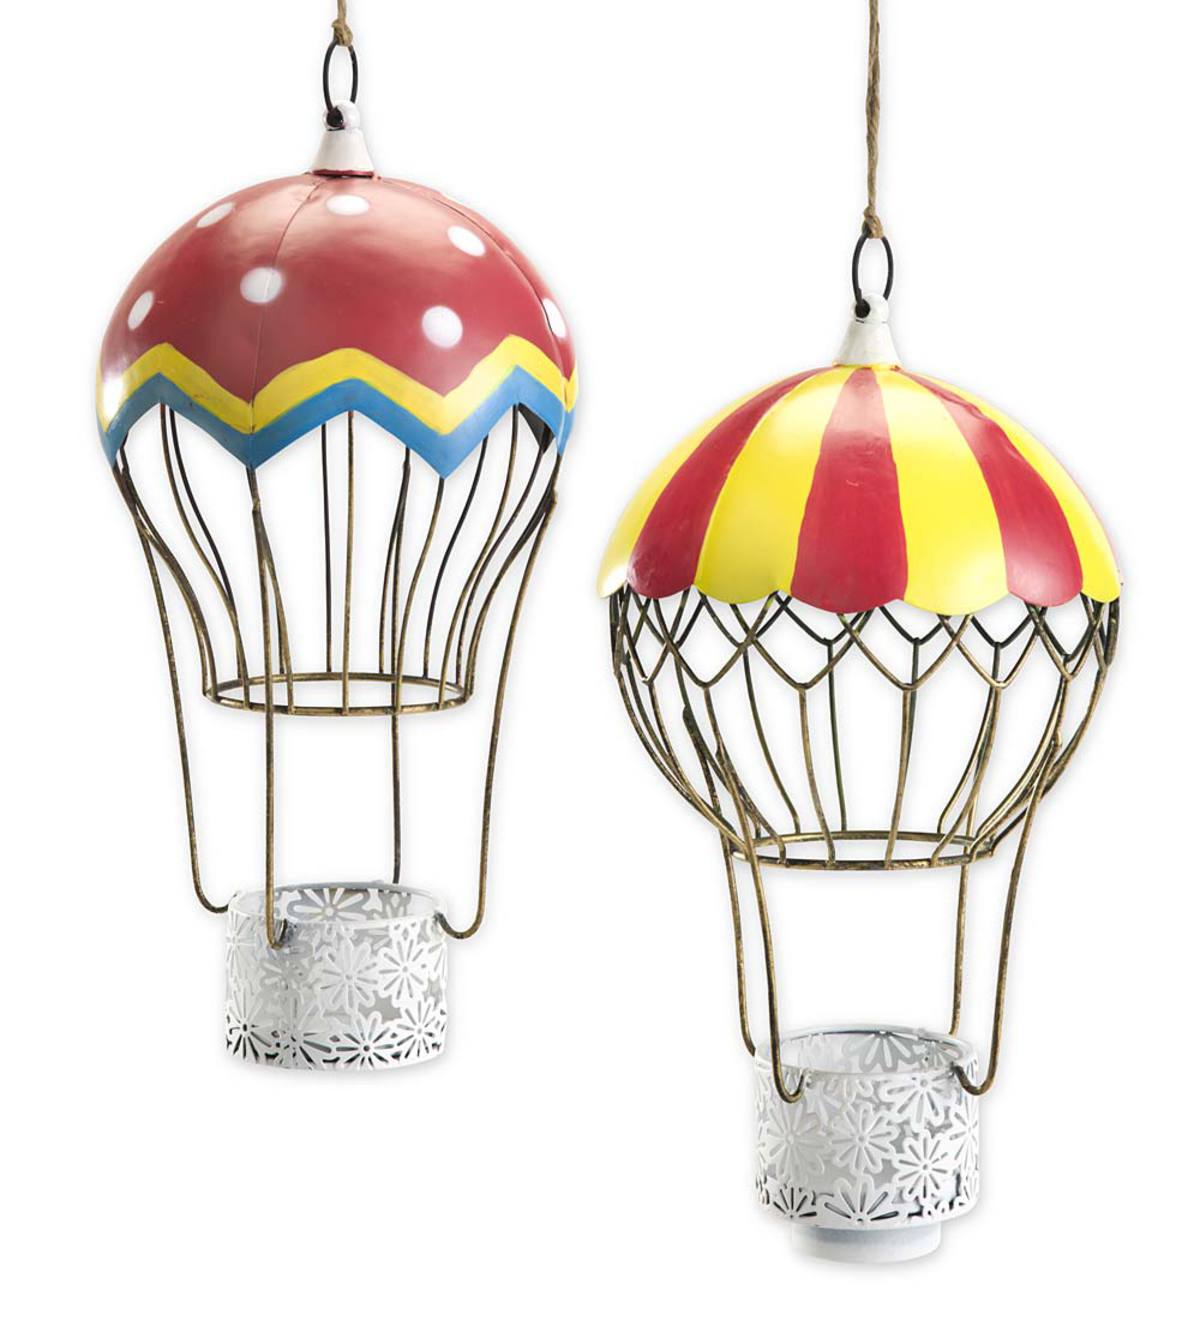 Unique Metal Hot Air Balloon Candle Holders, Set of 2 | Wind and Weather NQ49